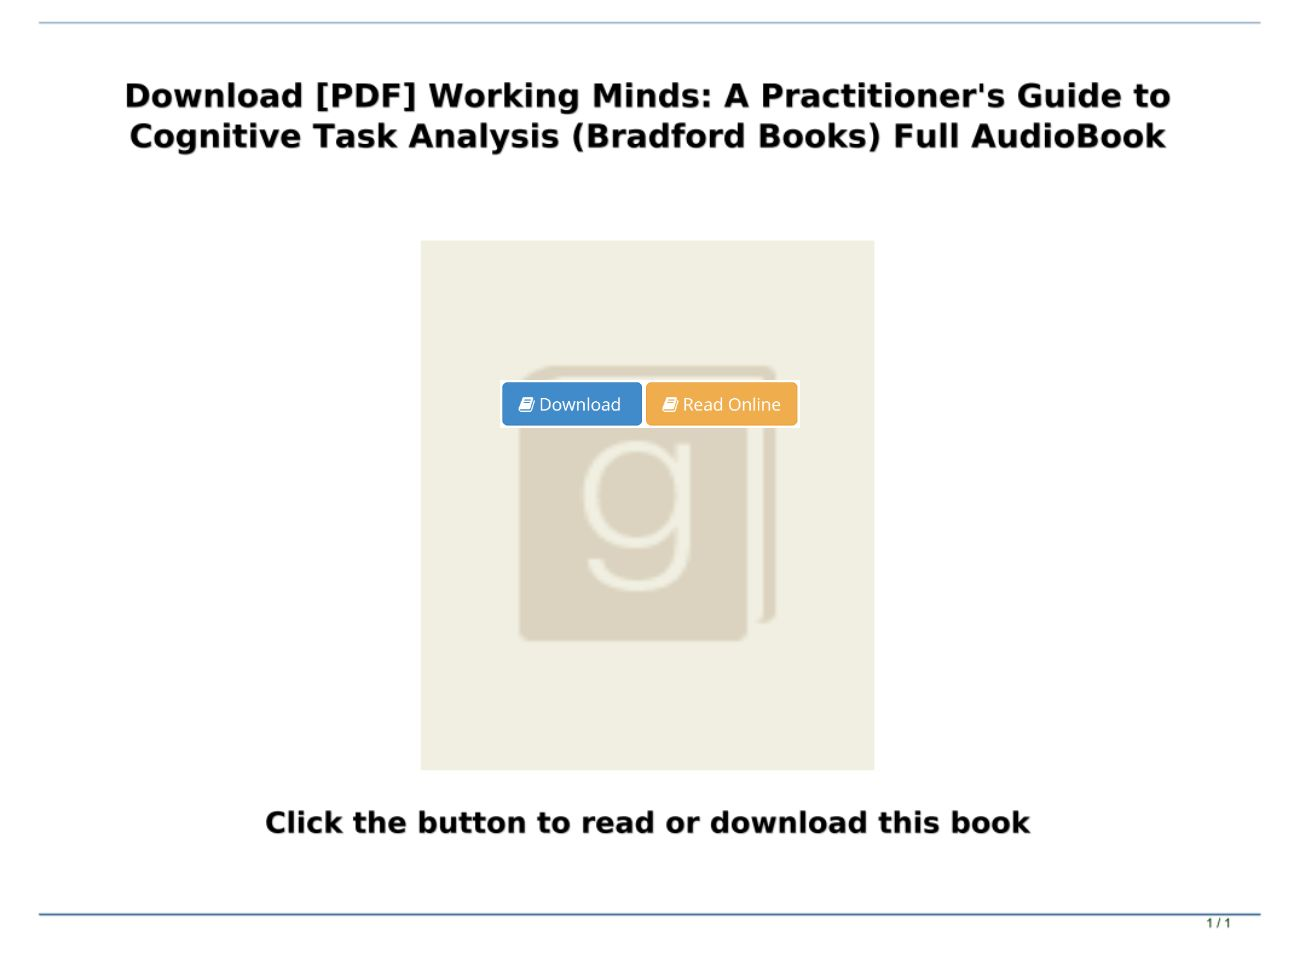 A Practitioners Guide to Cognitive Task Analysis Working Minds